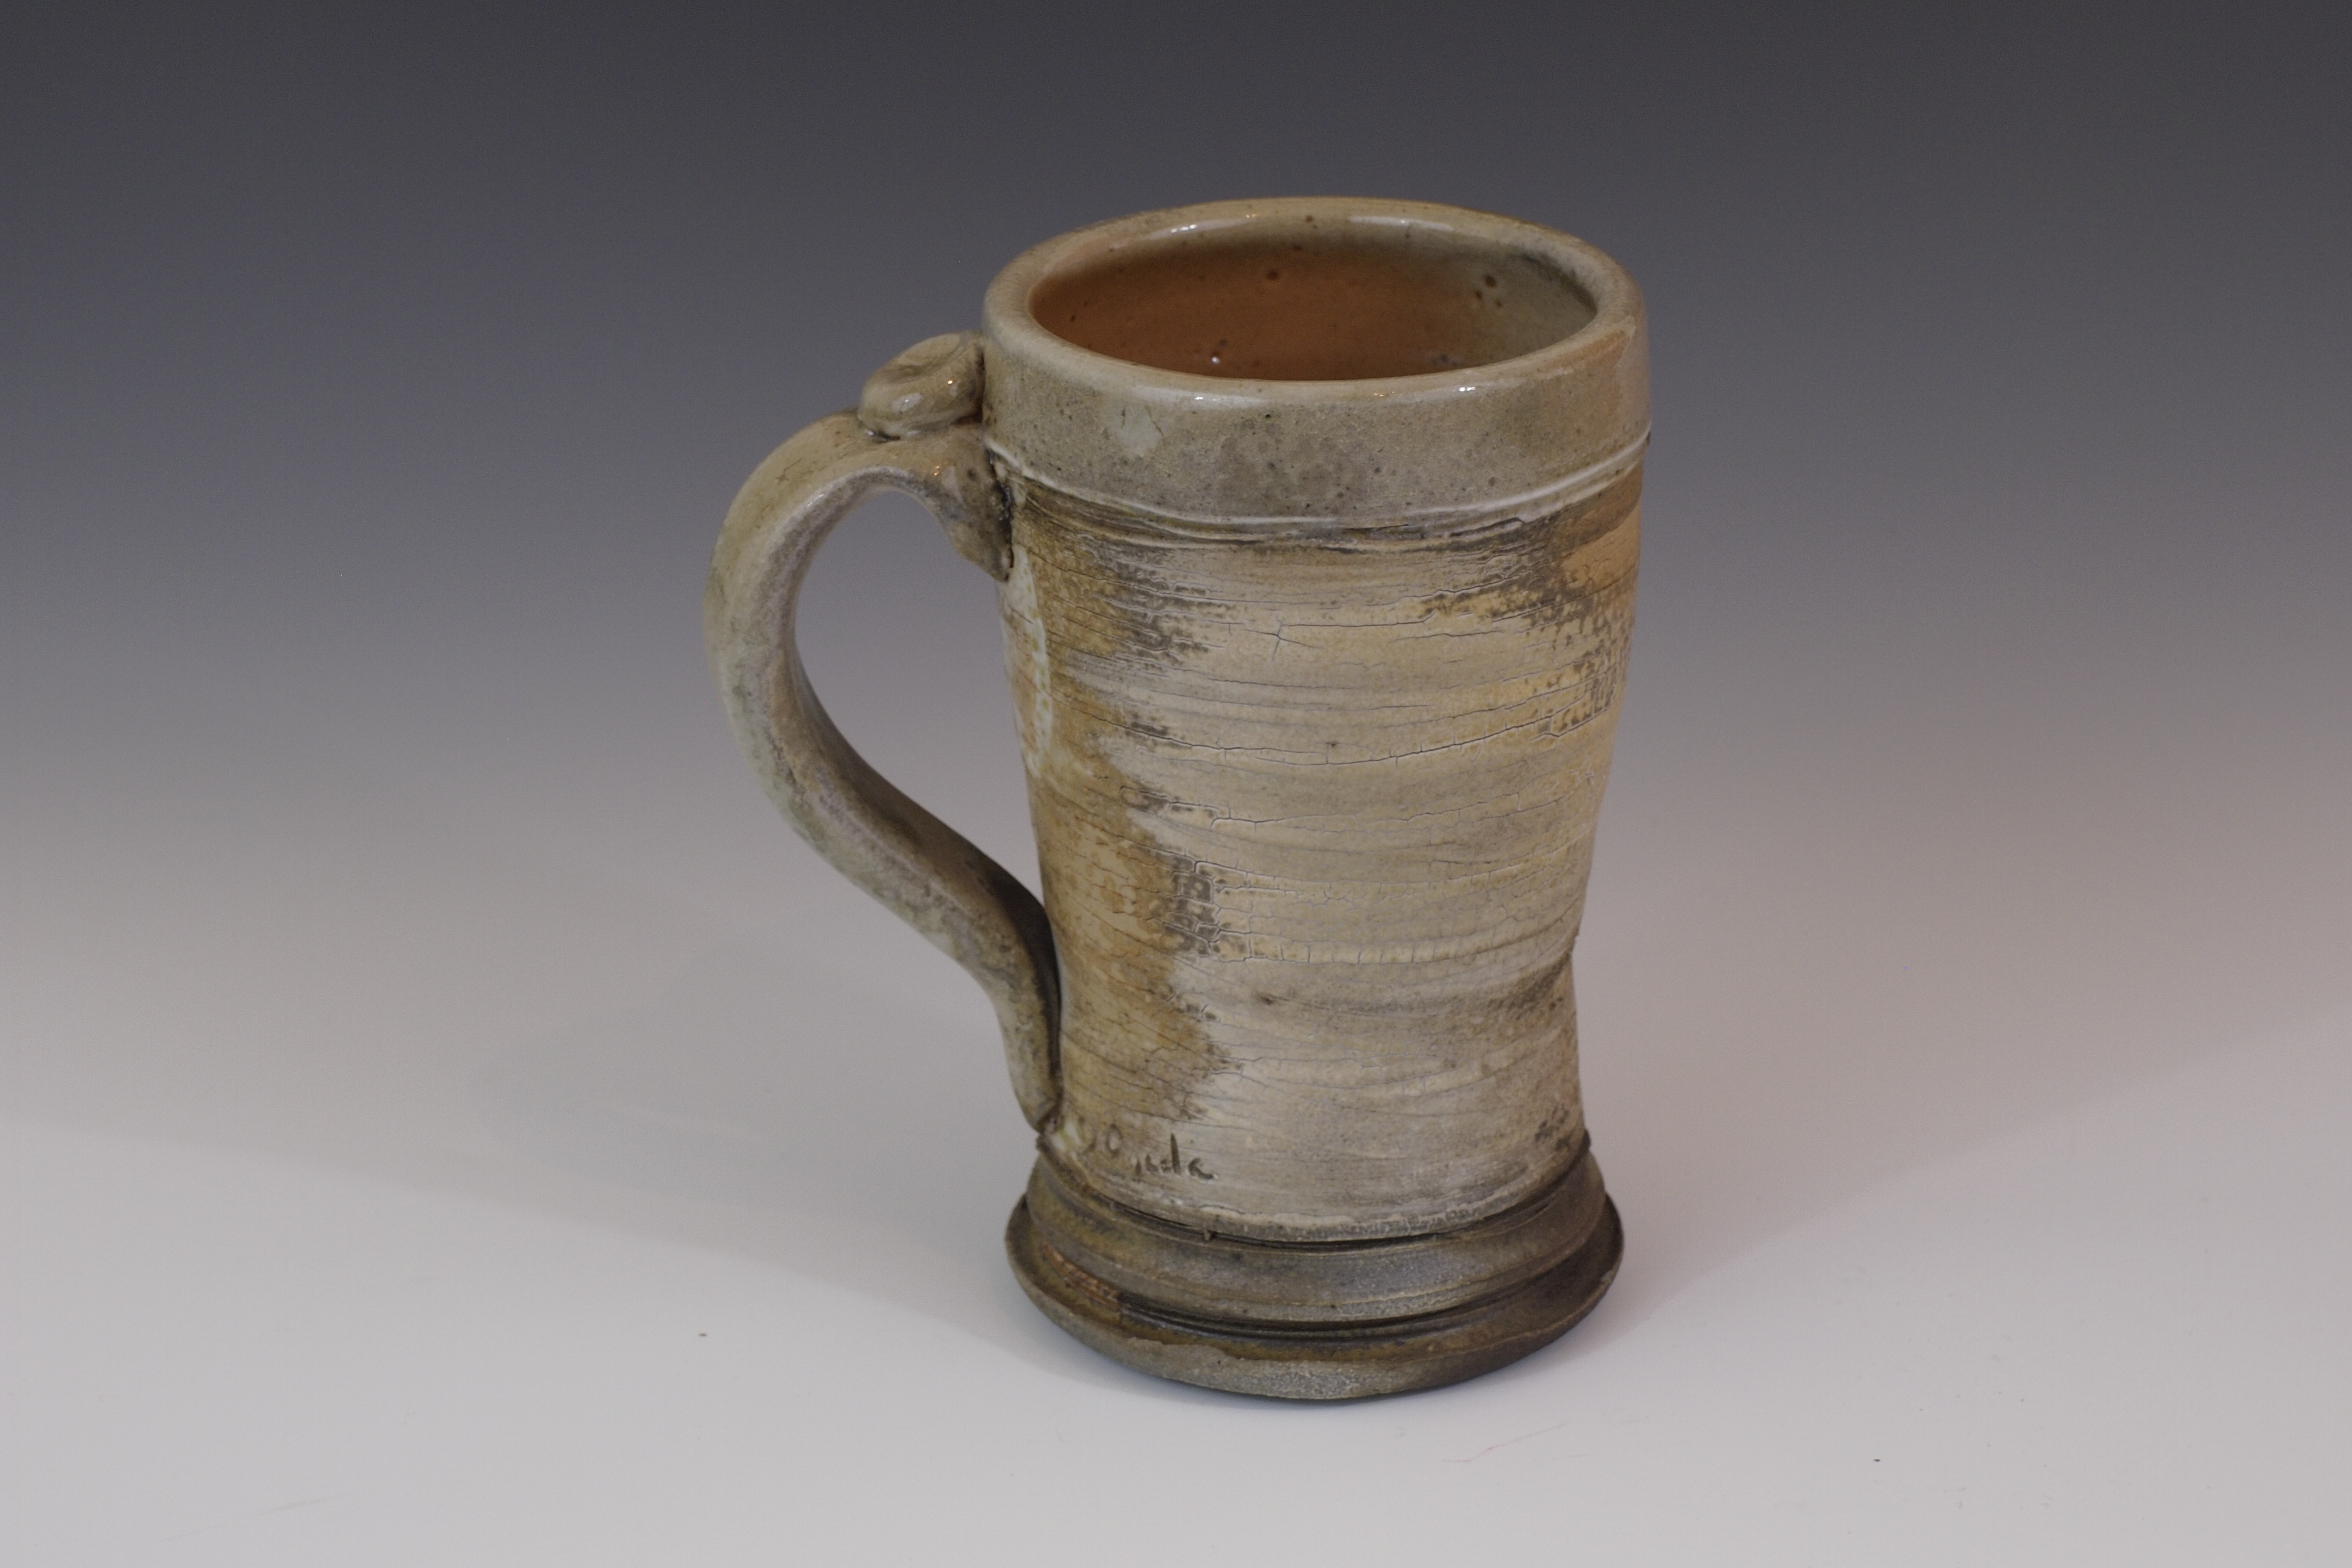 Wood-fired beer stein